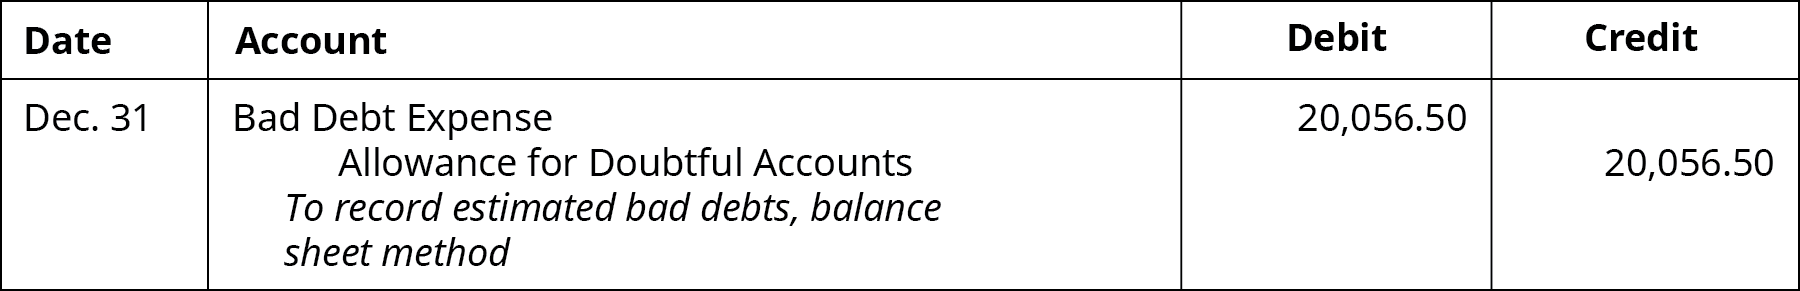 "Journal entry: December 31 Debit Bad Debt Expense 20,056.50, credit Allowance for Doubtful Accounts 20,056.50. Explanation: ""To record estimated bad debts, balance sheet method."""